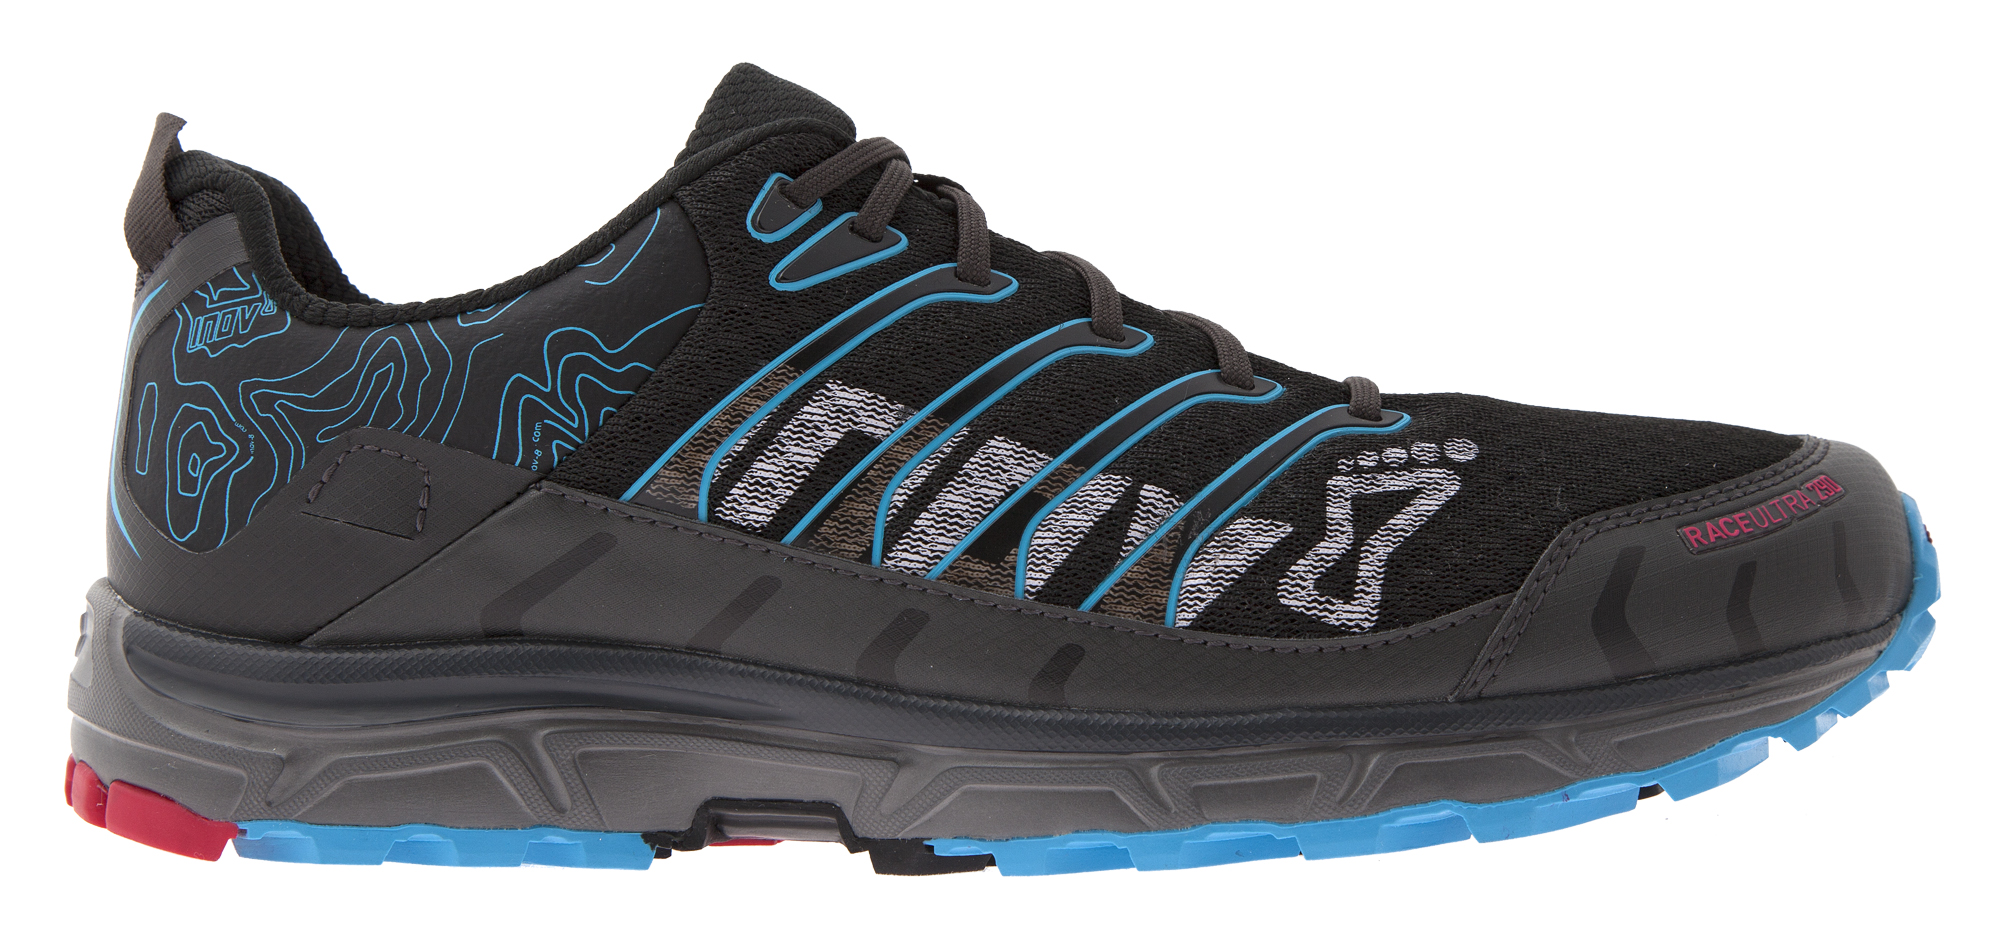 Inov 8 Race Ultra 290 Ultra Shoe Review Iancorless